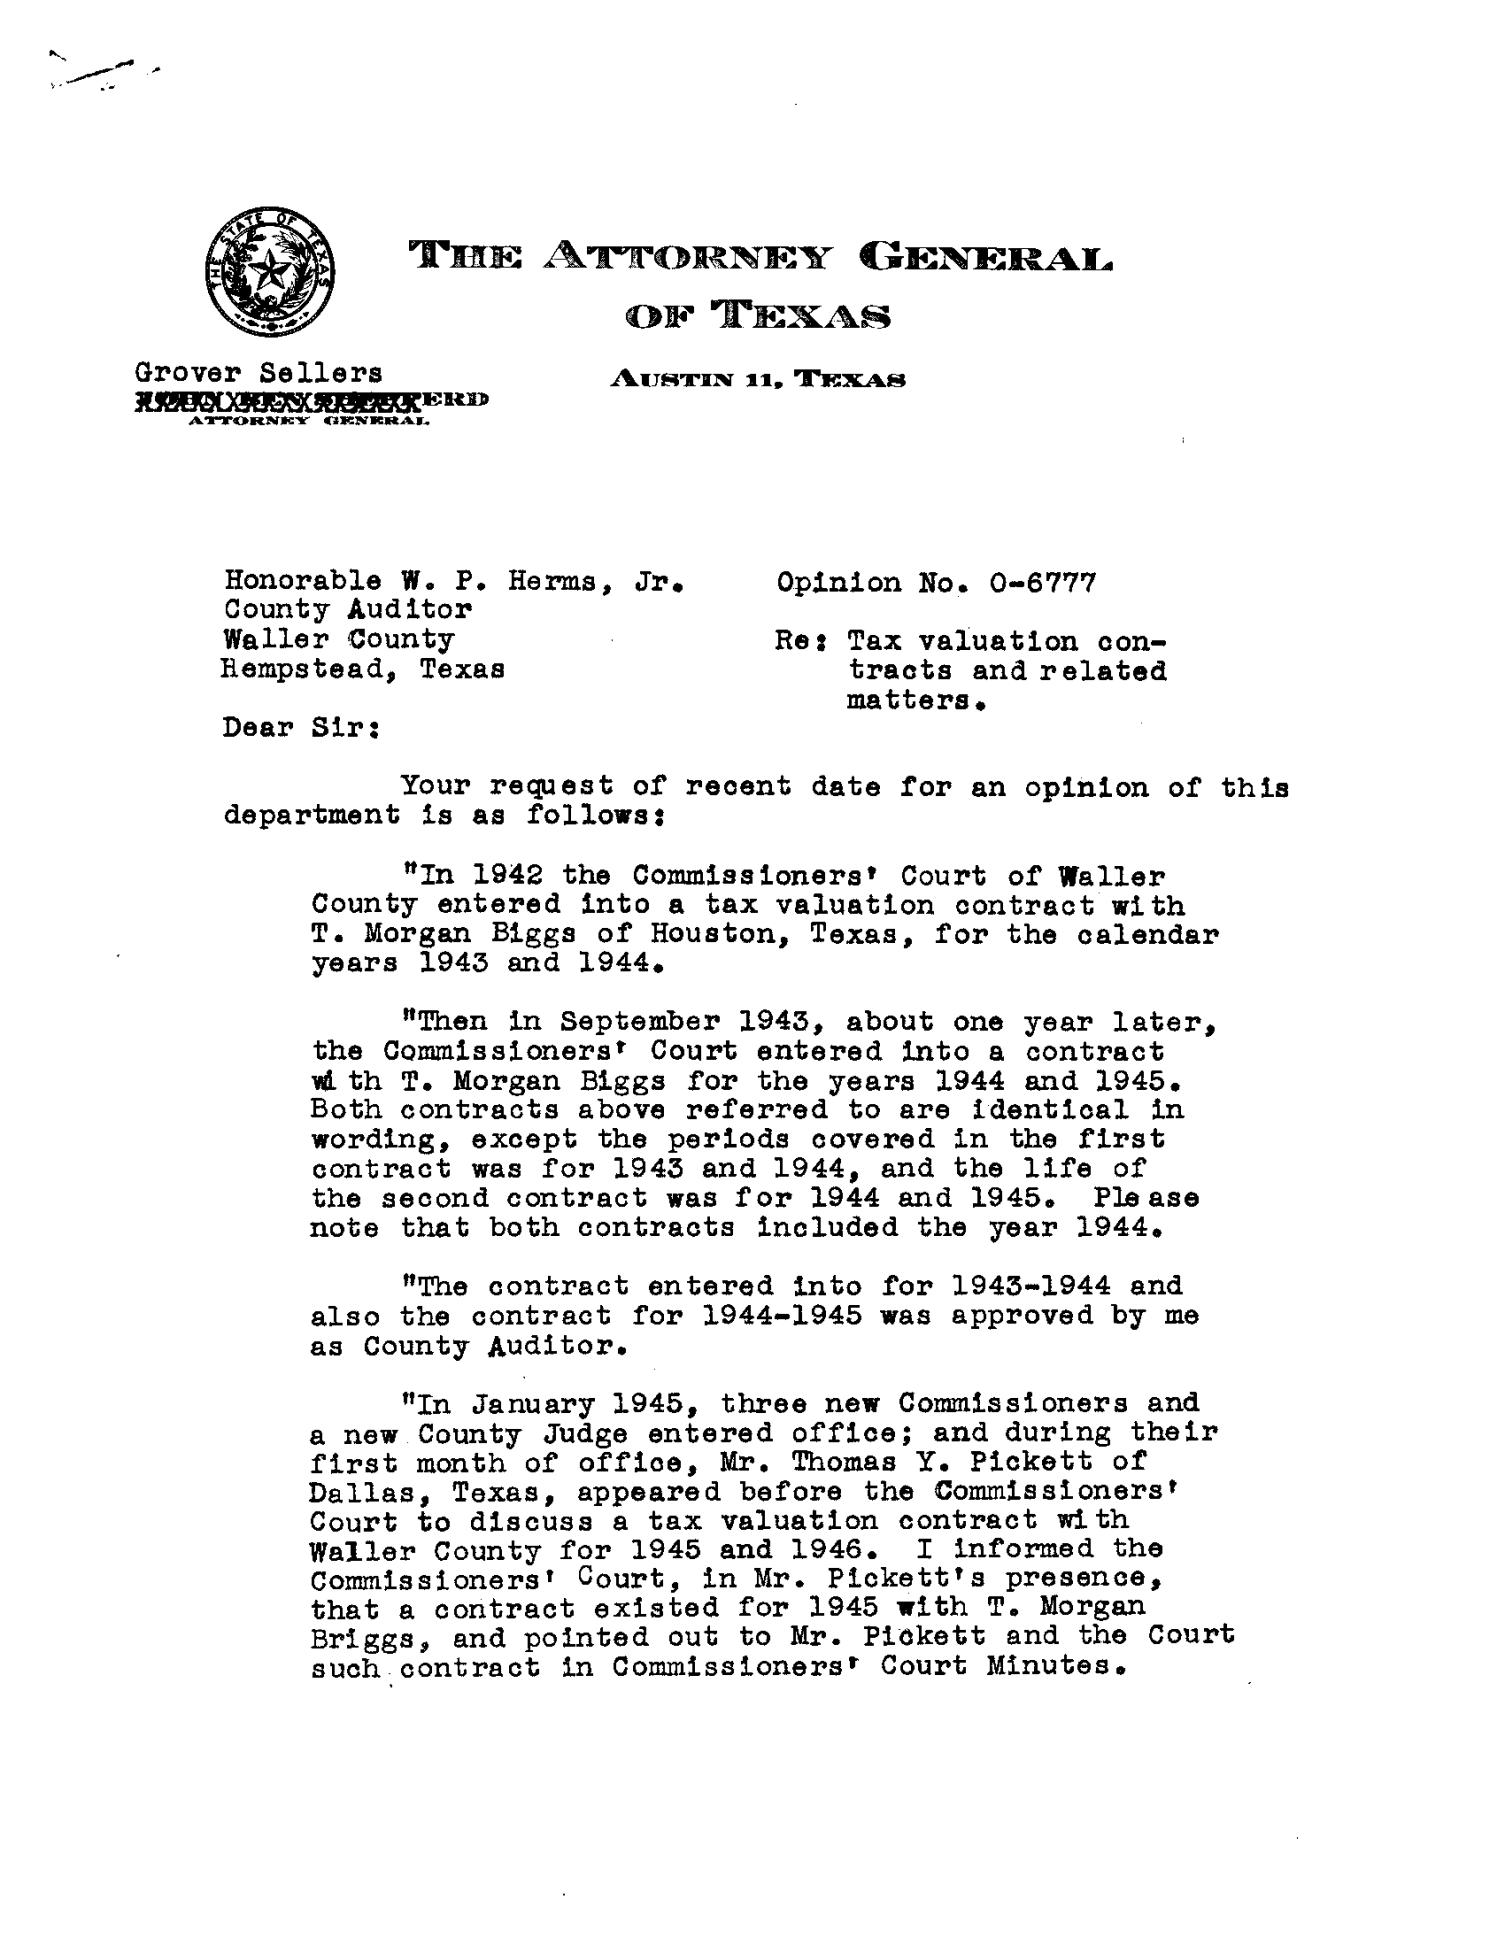 Texas Attorney General Opinion: O-6777 - Page 1 of 4 - The